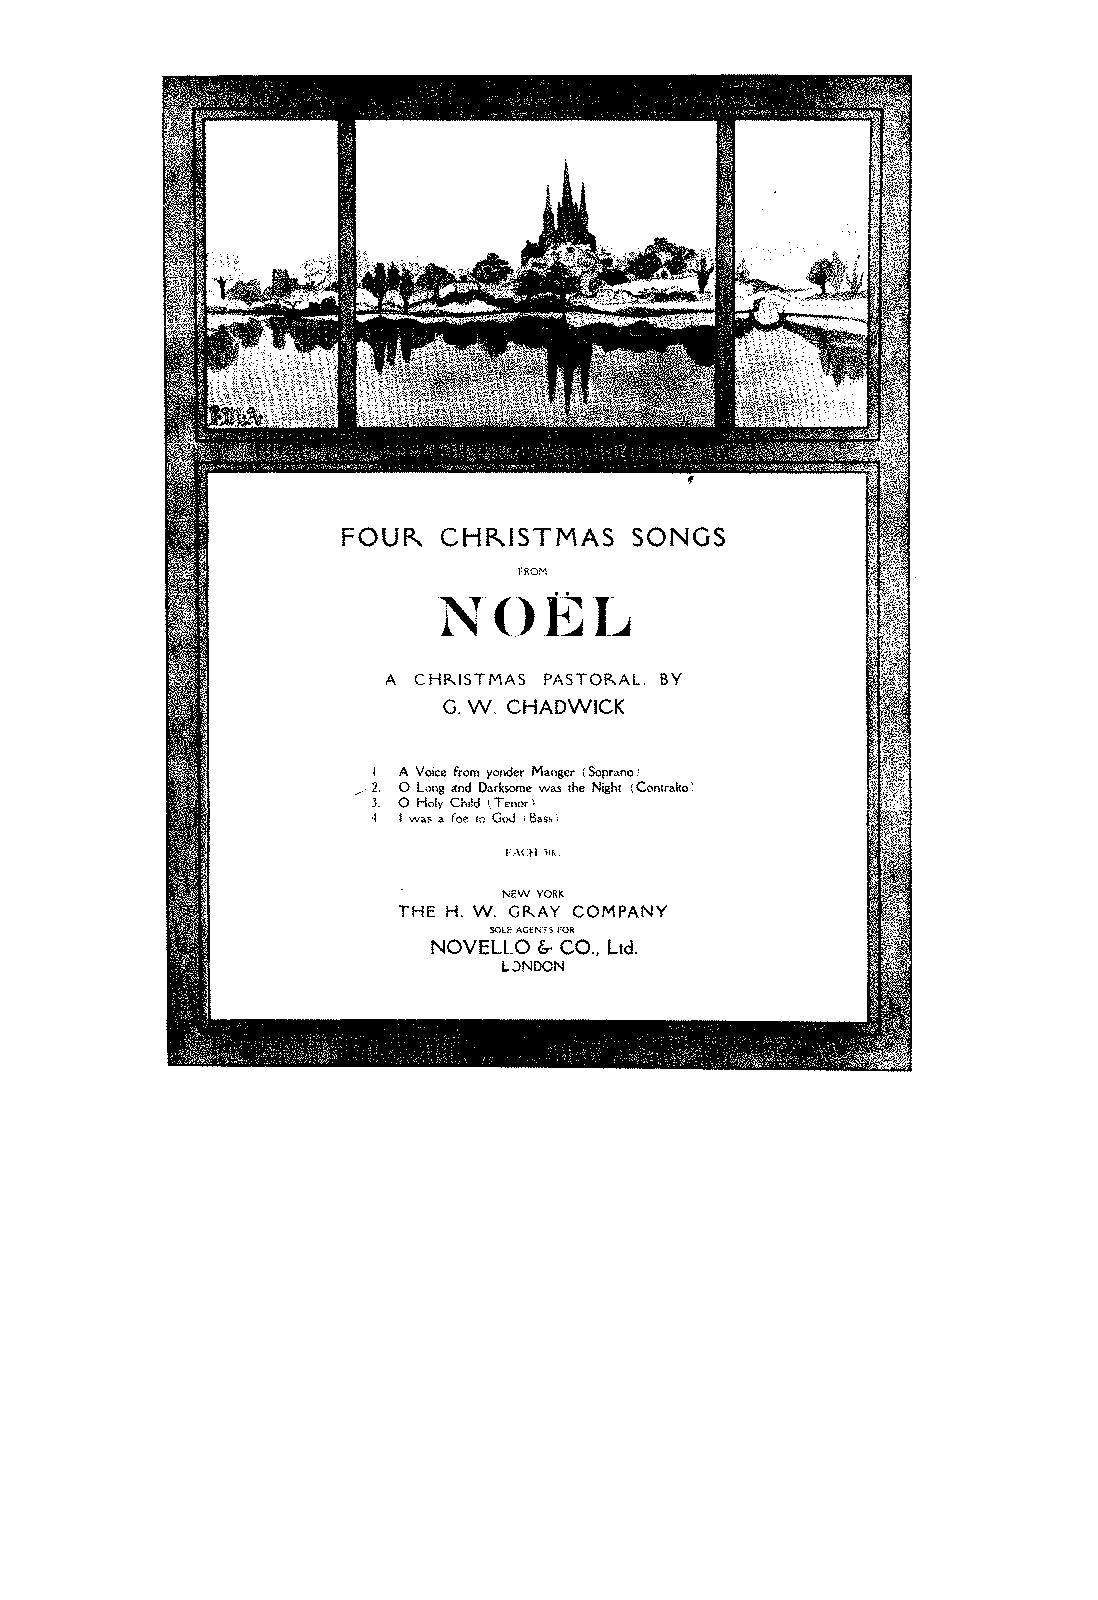 4 Christmas Songs from Noël (Chadwick, George Whitefield